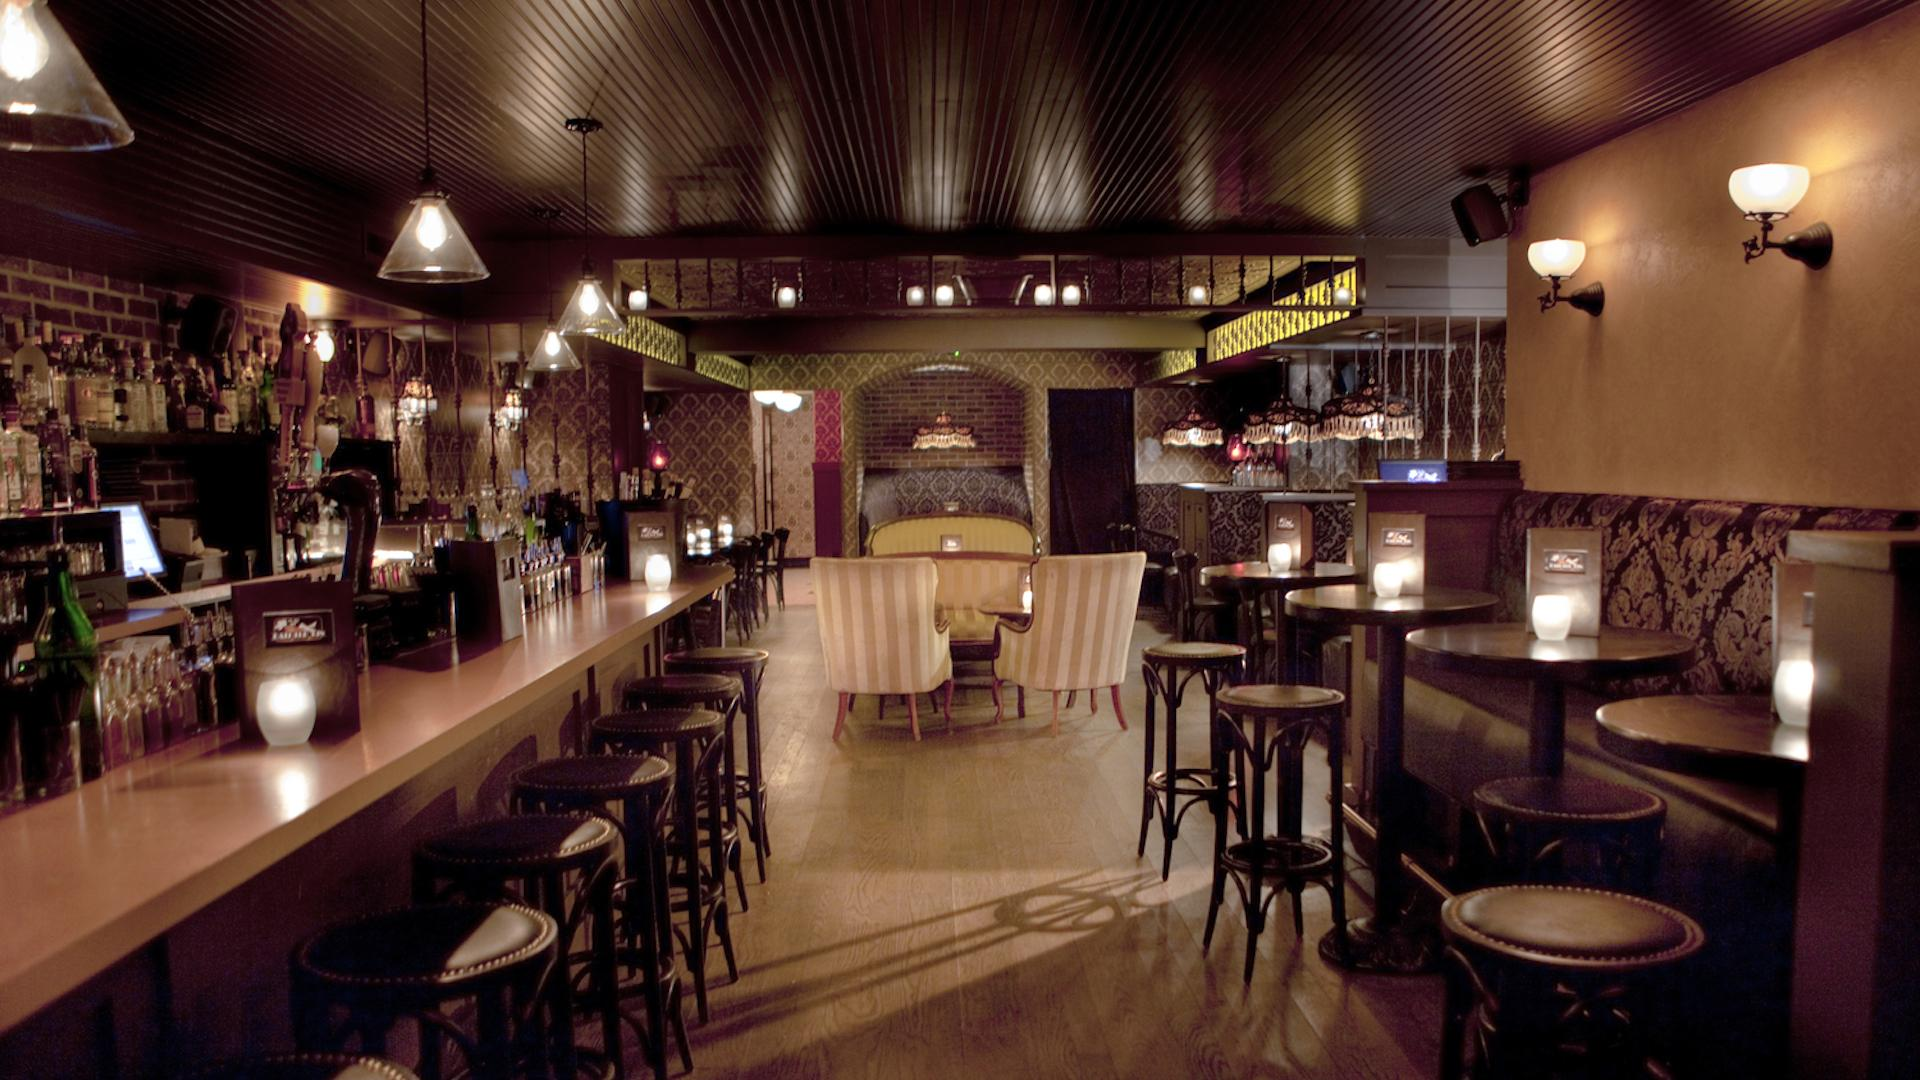 space at Bathtub Gin